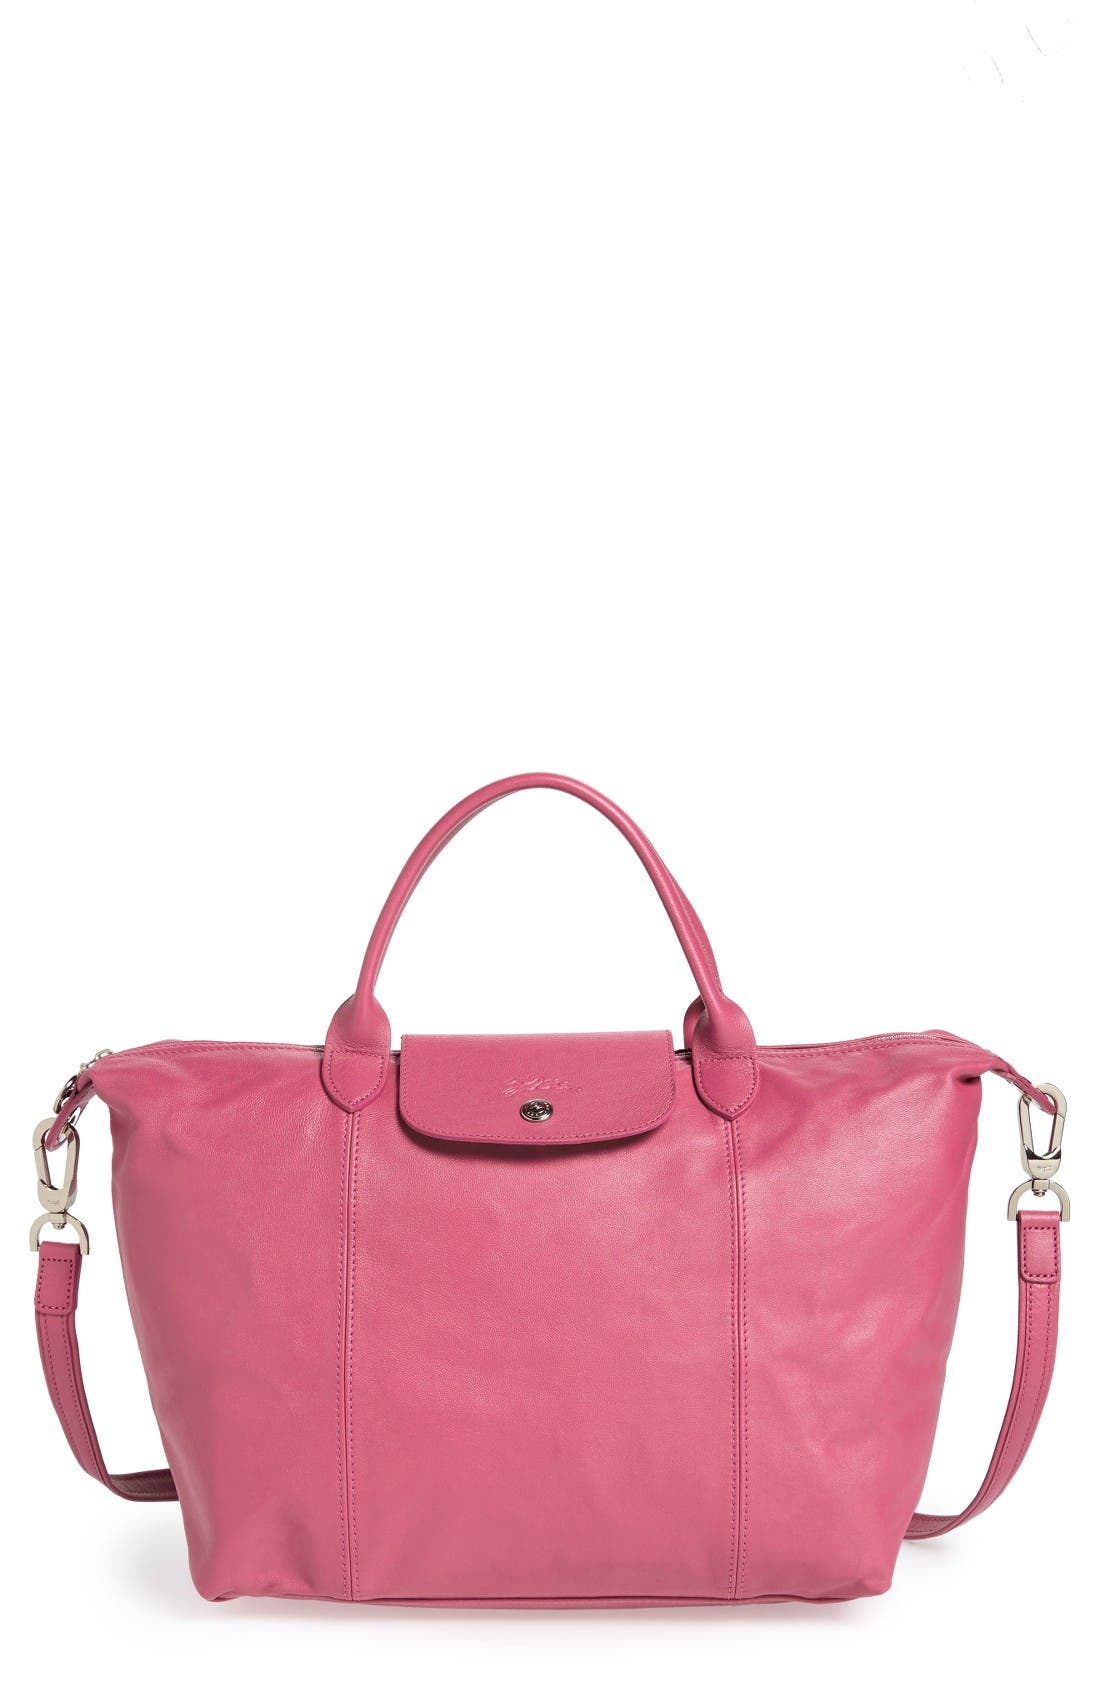 Medium 'Le Pliage Cuir' Leather Top Handle Tote,                             Main thumbnail 31, color,